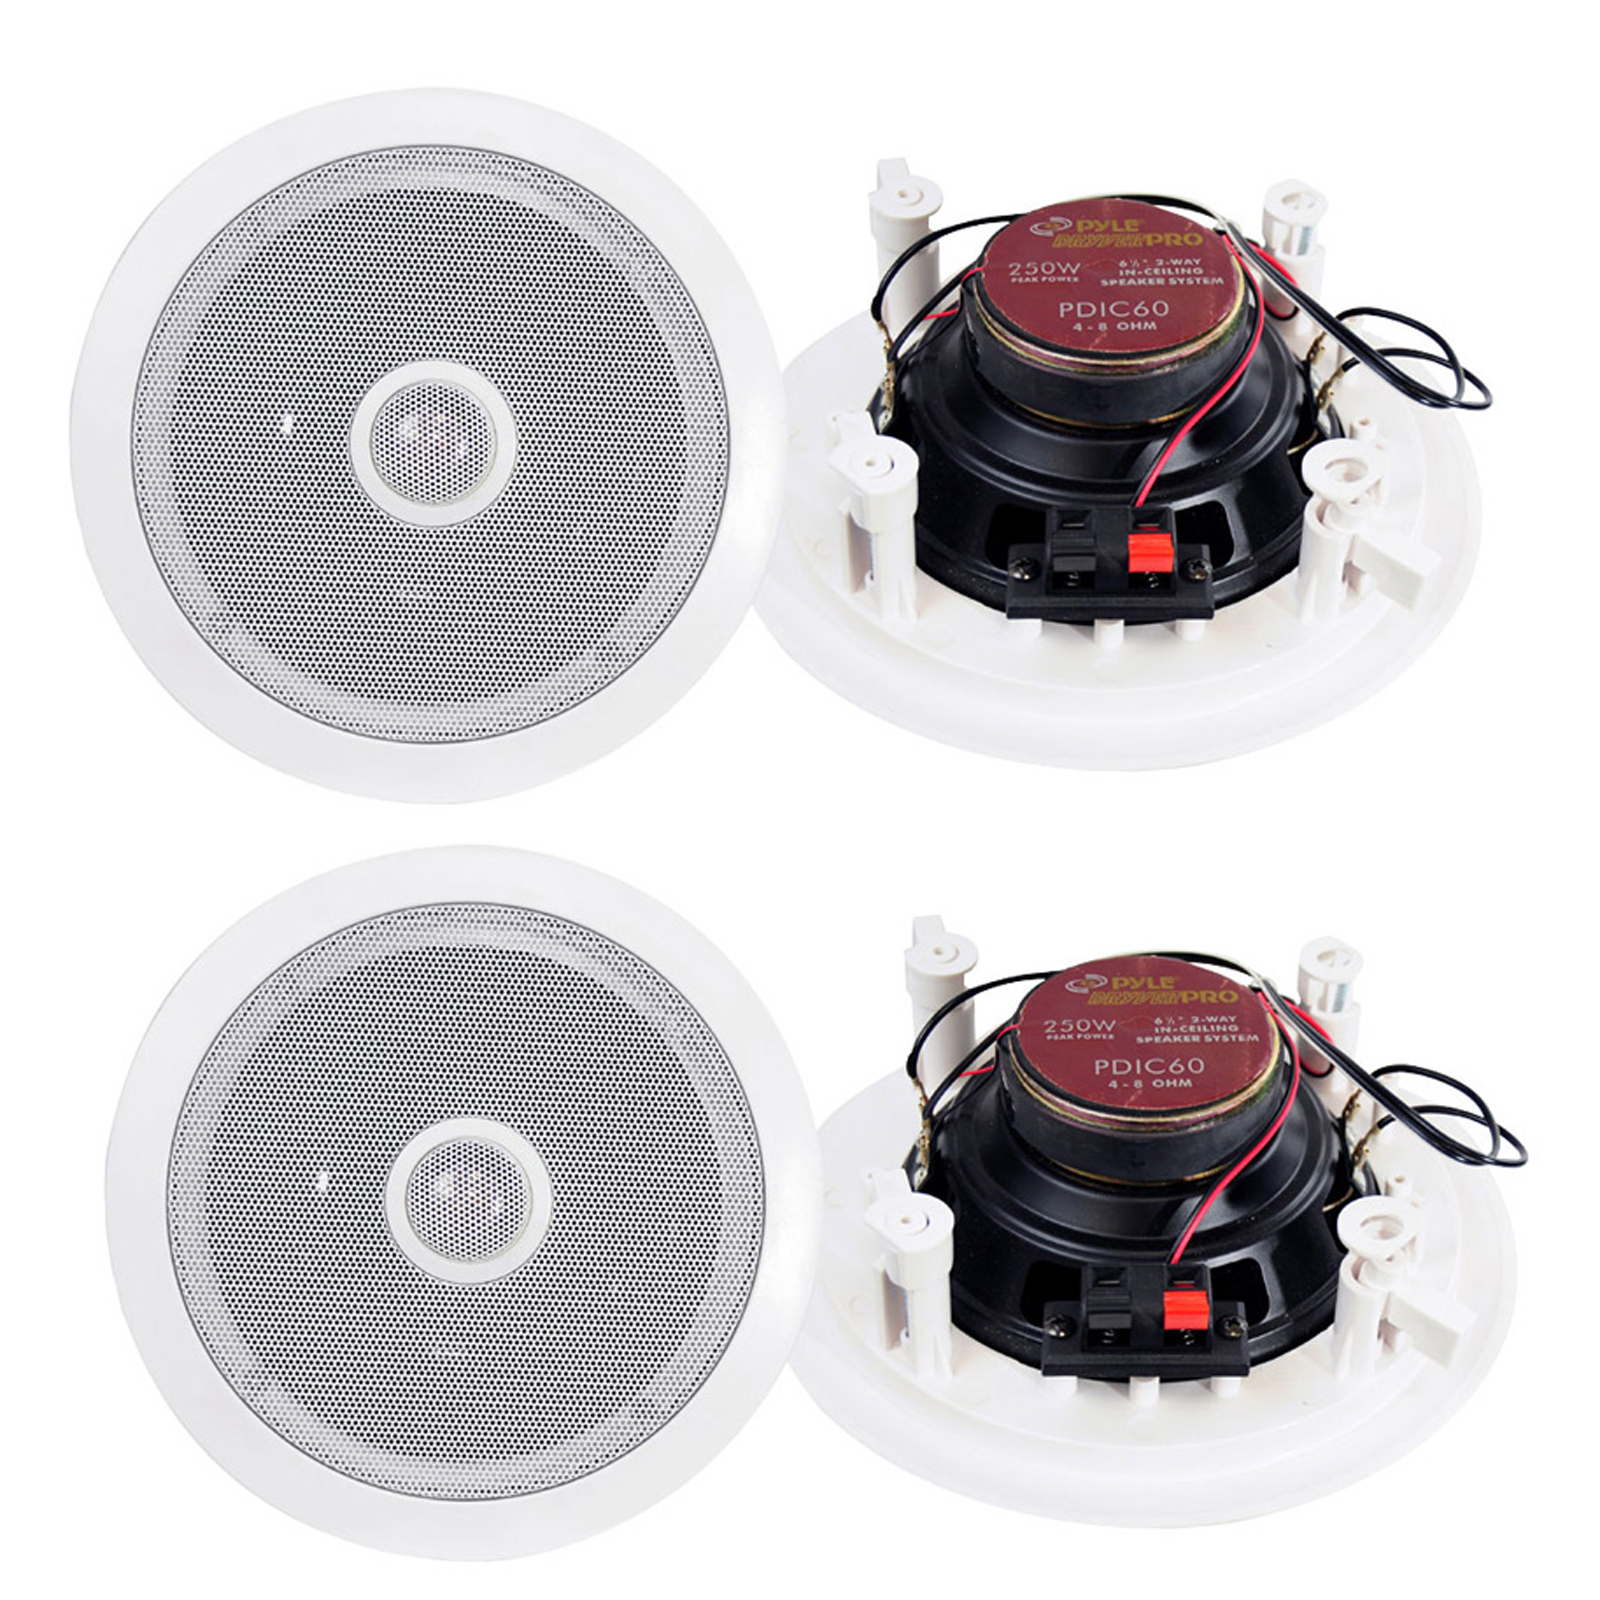 Pyle Home 250-Watt 6.5-Inch Two-Way In-Ceiling Speaker System (Pair)